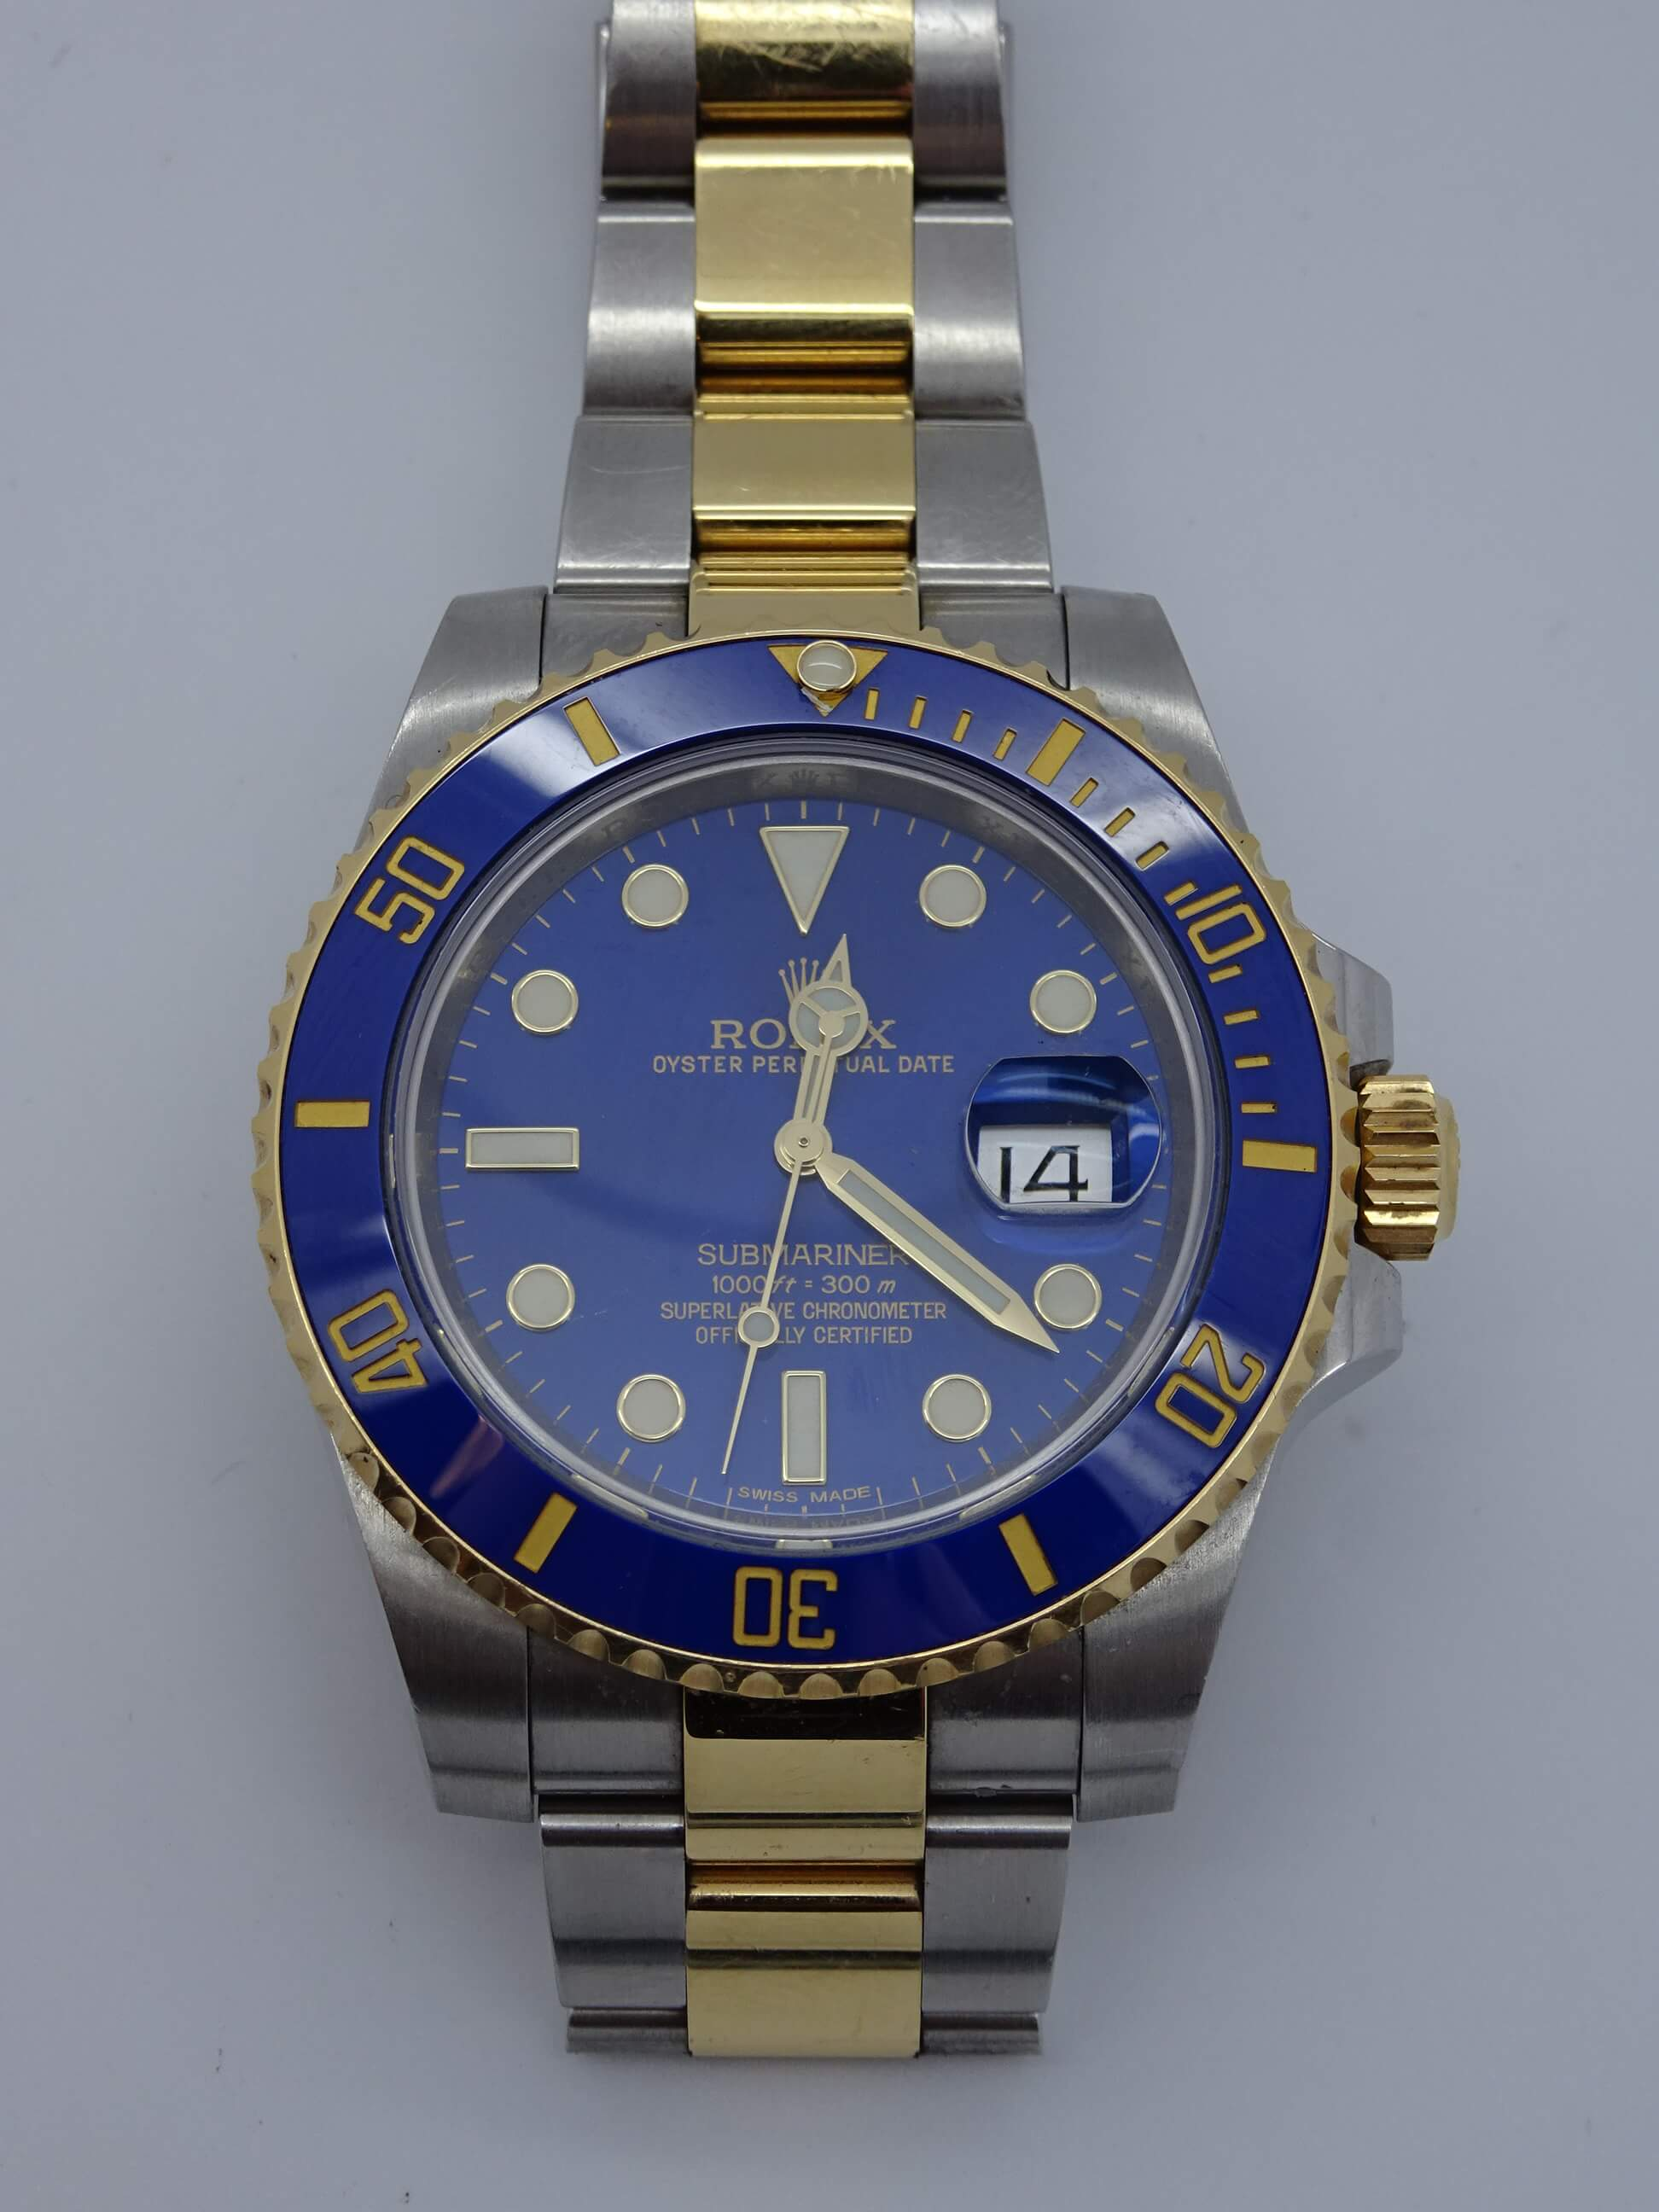 Rolex Submariner Ss 18k Blue Face William Youngerman